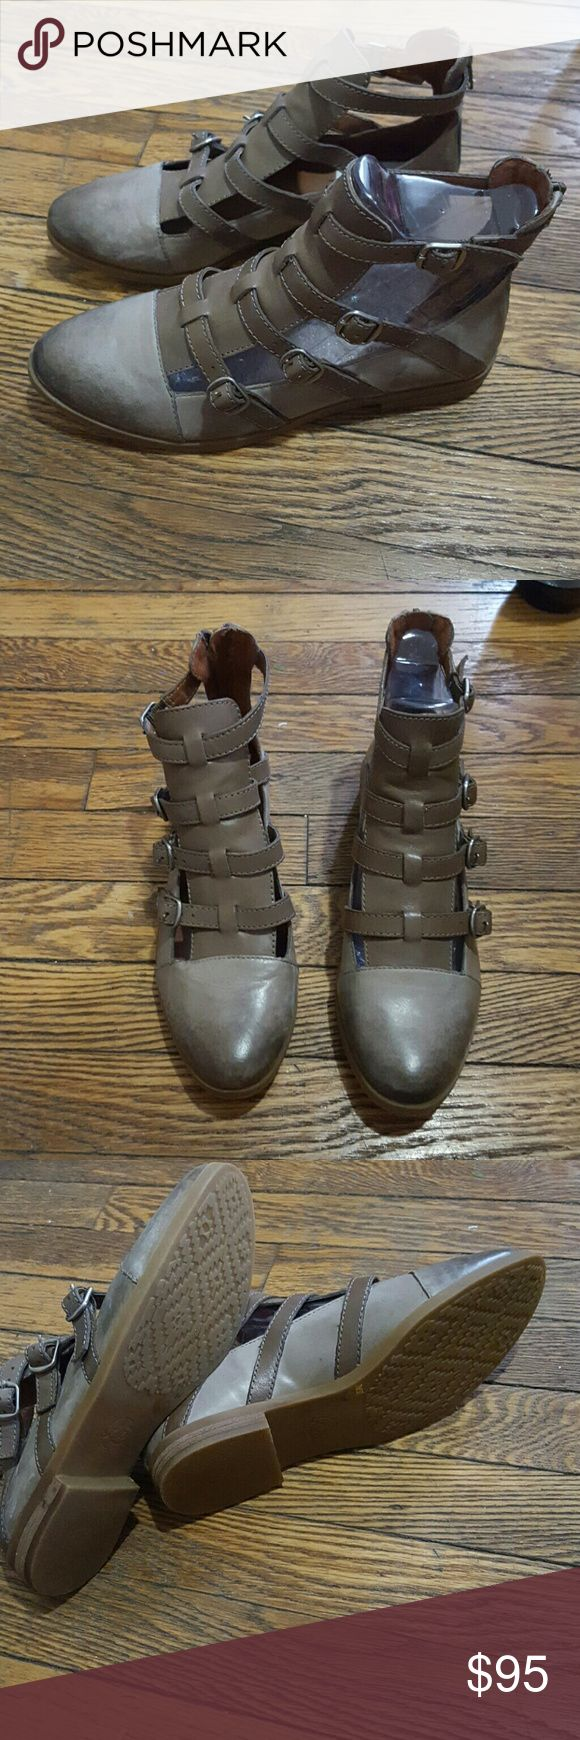 ⤵⤵NWT lucky Brand hotcha leather gladiator flat These are flats that have strap up around ankle to give it almost a bootie look. New with tags (do not have box). Straps are adjustable and there is a zip back. These are a light brown taupe color  CLOSET CLEAROUT PRICE IS FIRM Lucky Brand Shoes